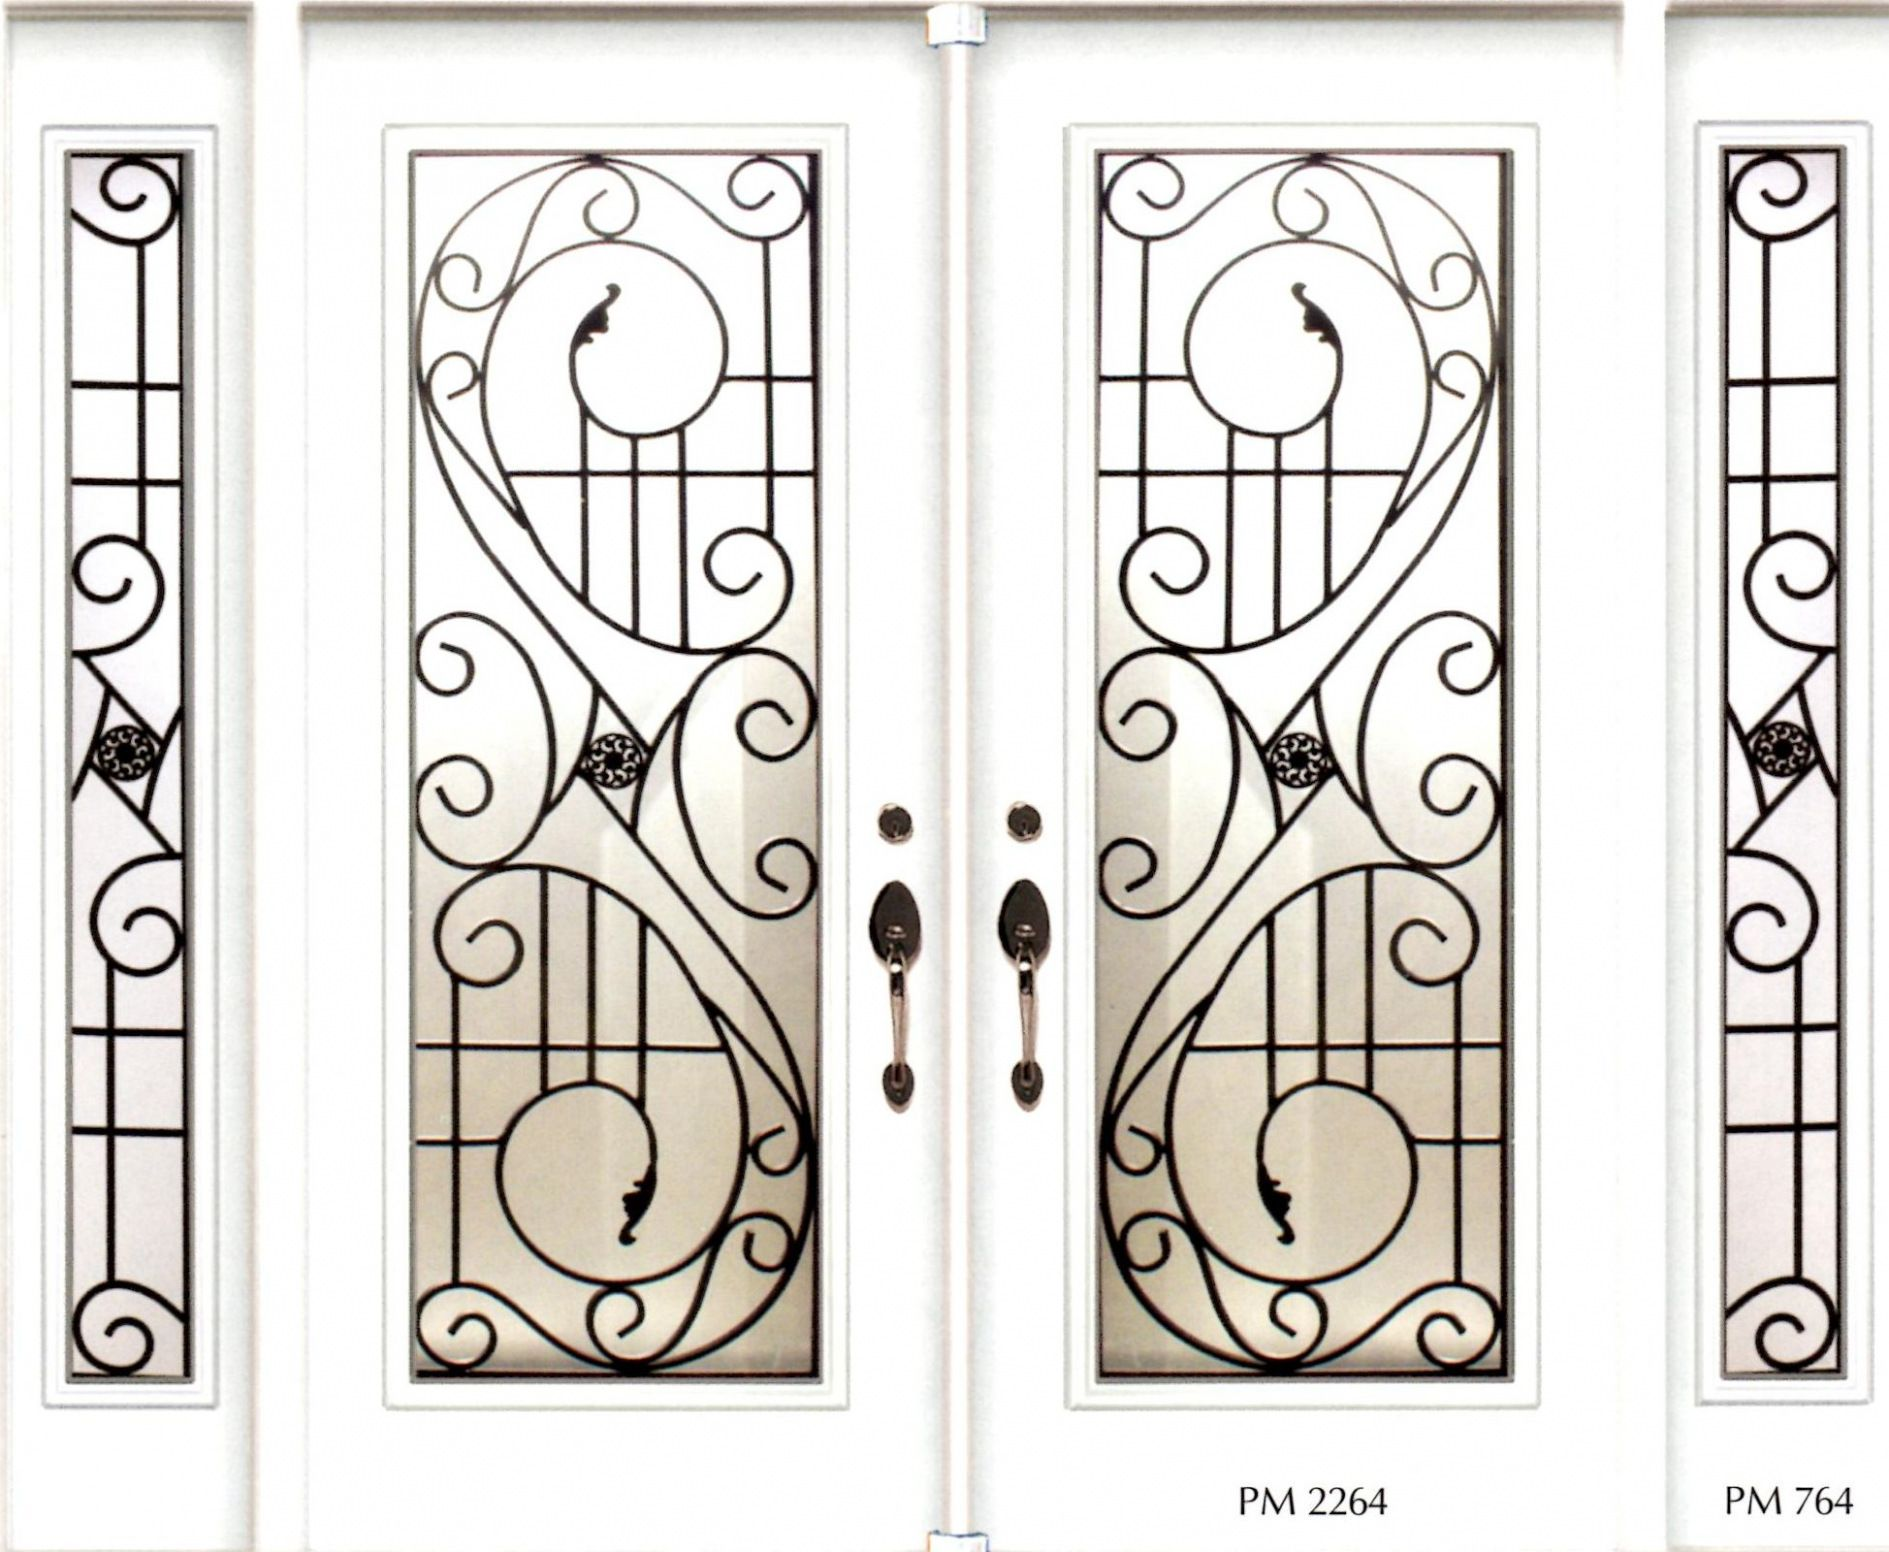 Fantastic Wrought Iron Inserts Stained Glass Door Inserts And Wrought Iron Door Inserts Wrought Iron Door Inserts Wrought Iron Decor Wrought Iron Doors